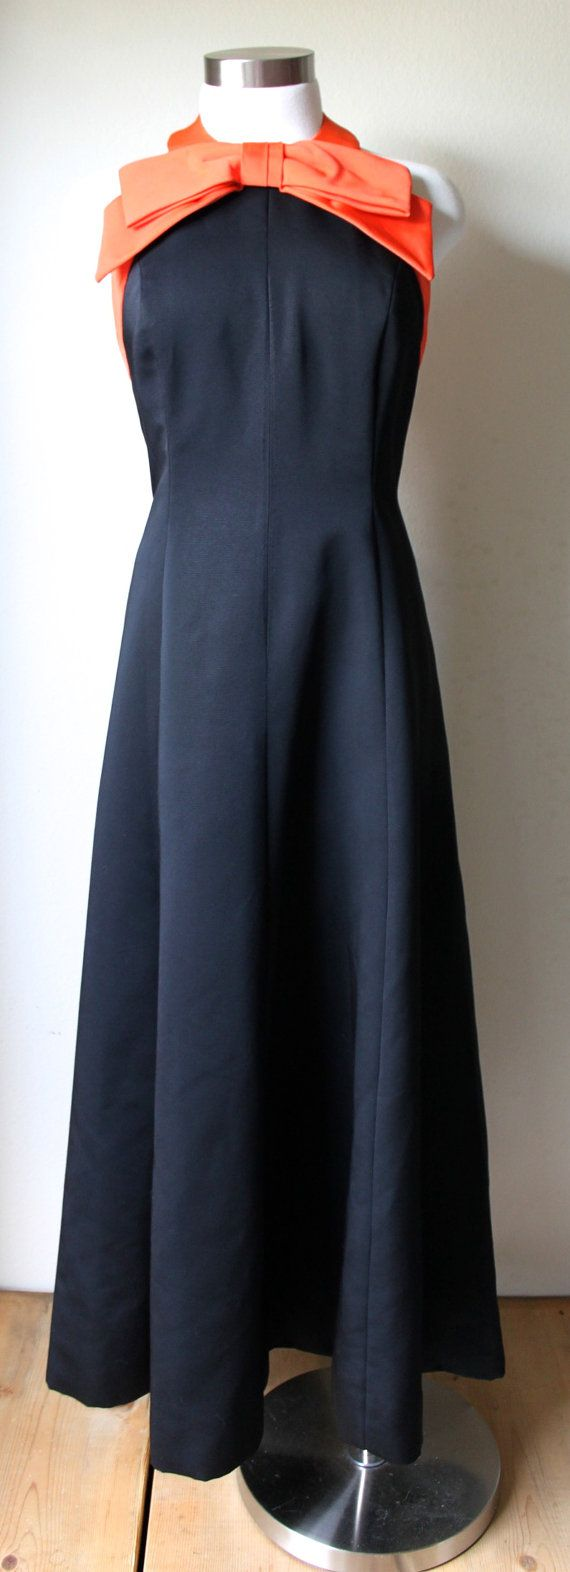 Stylish vintage s black gown with orange by vintagerosemond